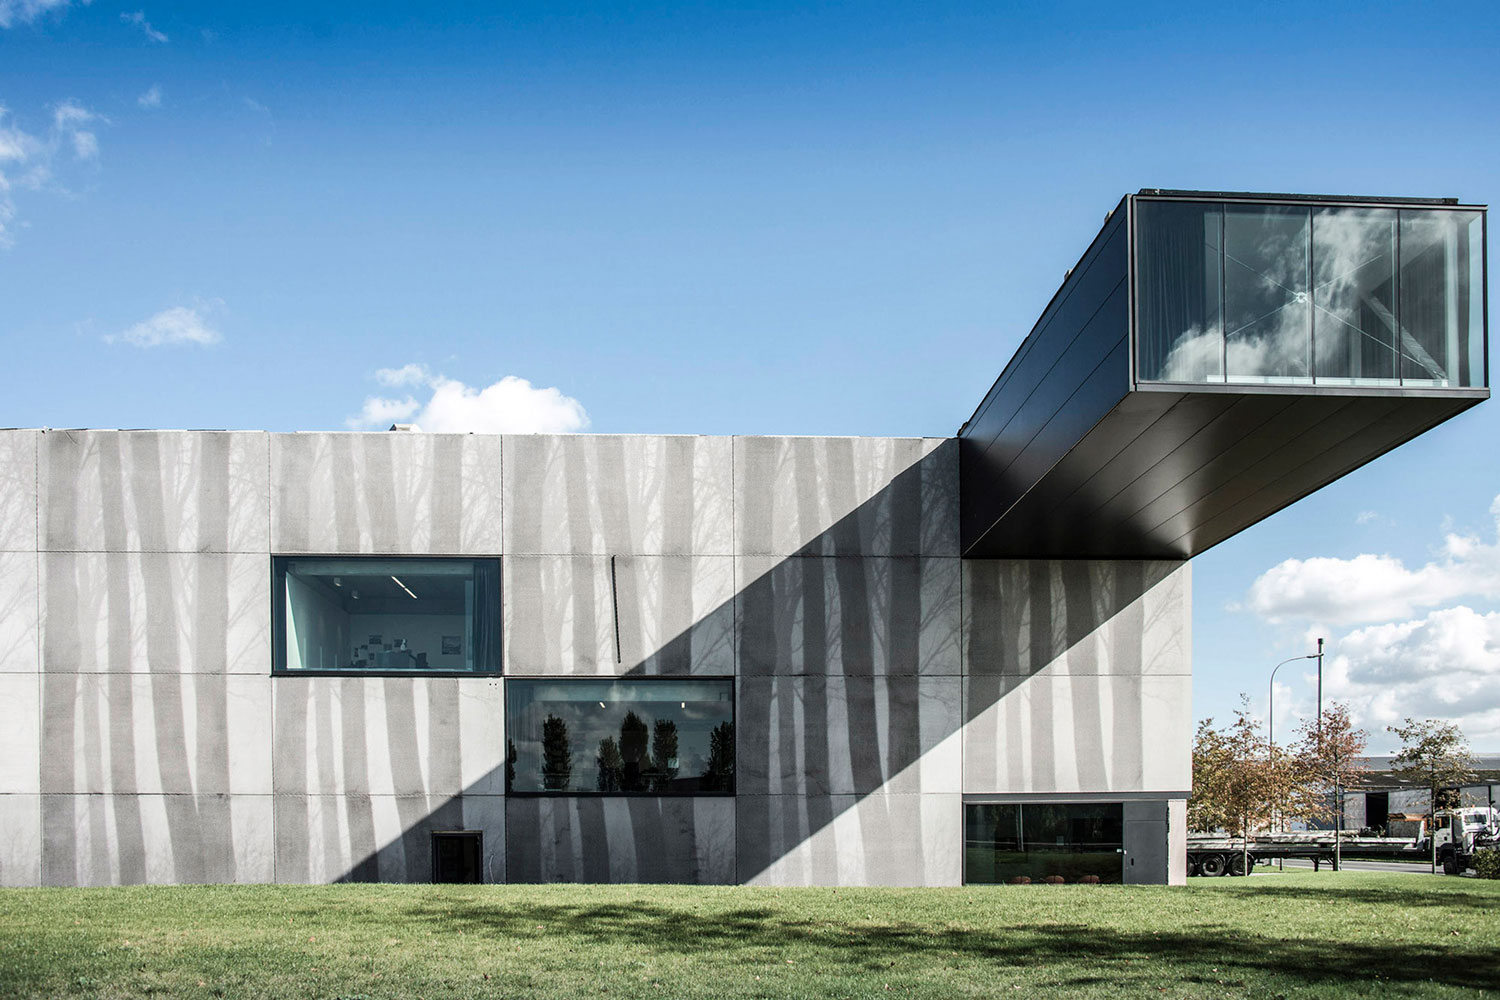 Enjoy Concrete HQ by Govaert & Vanhoutte Architects | Yellowtrace